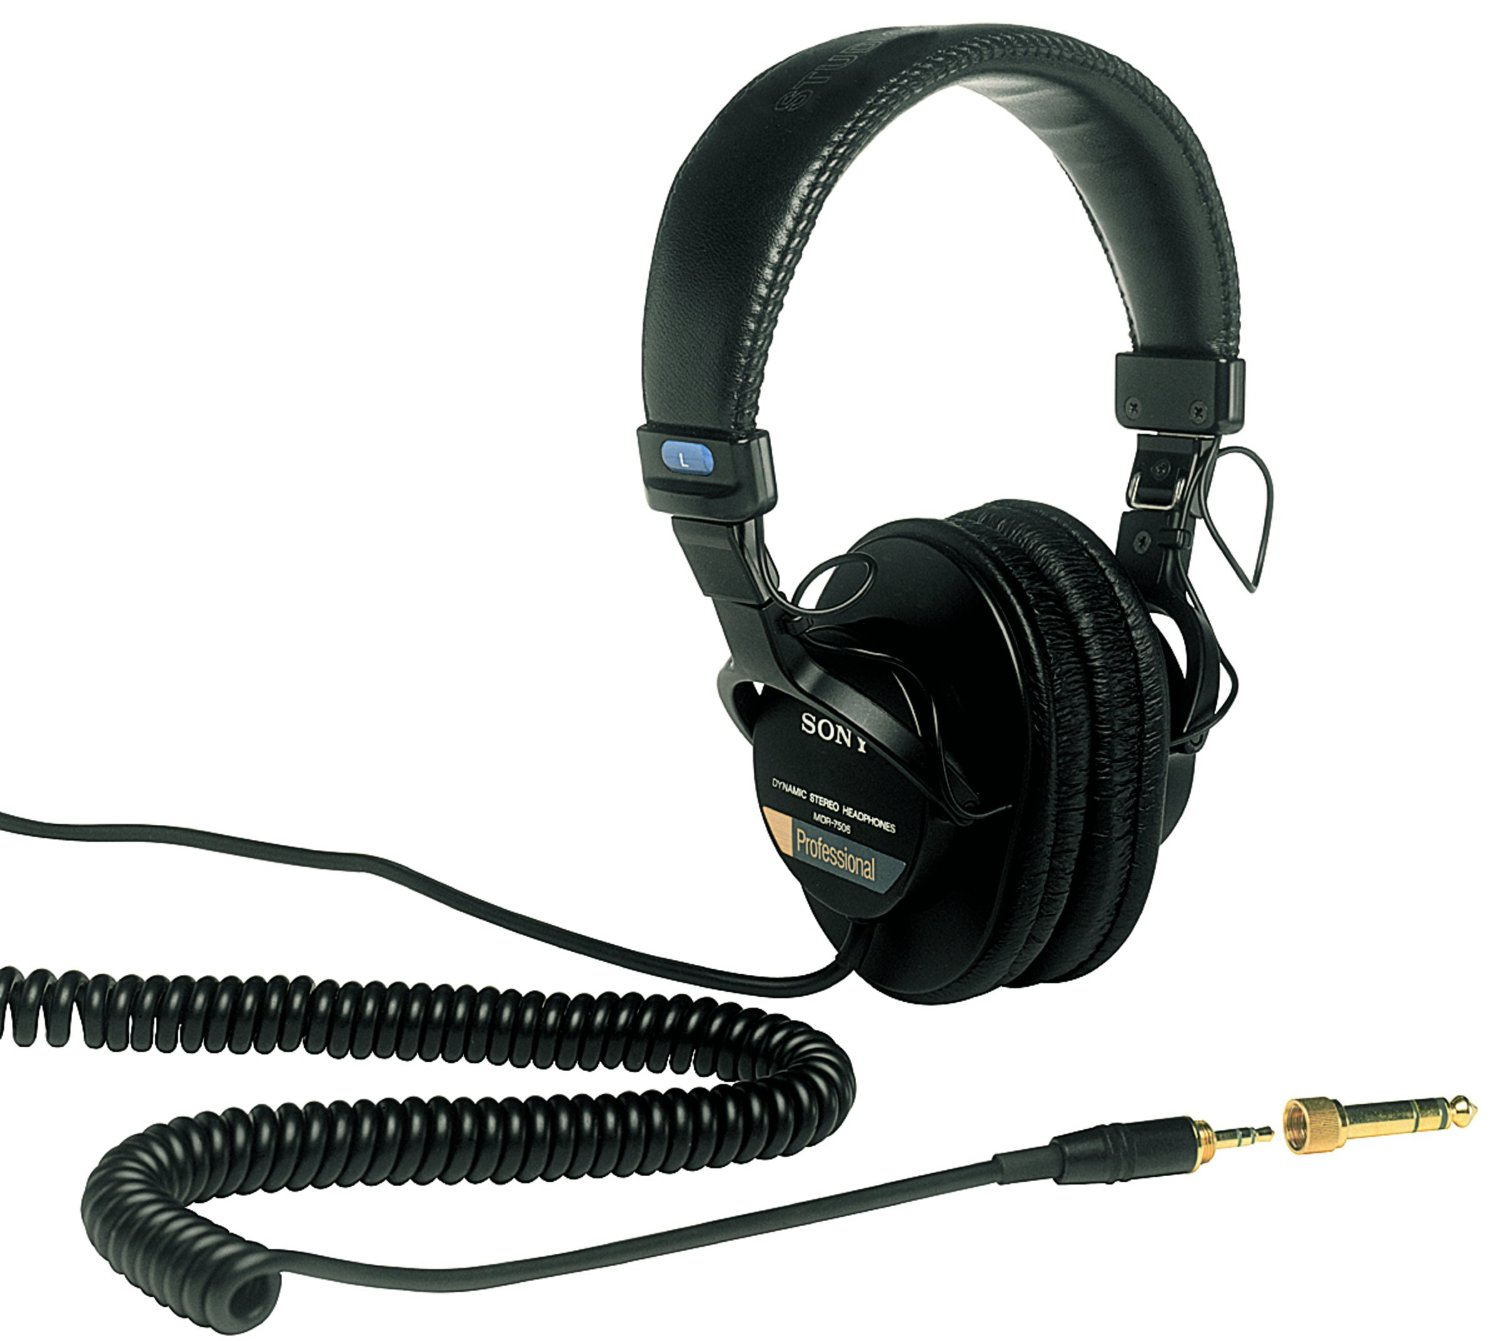 Sony MDR7506 Professional Studio Monitor Headphones